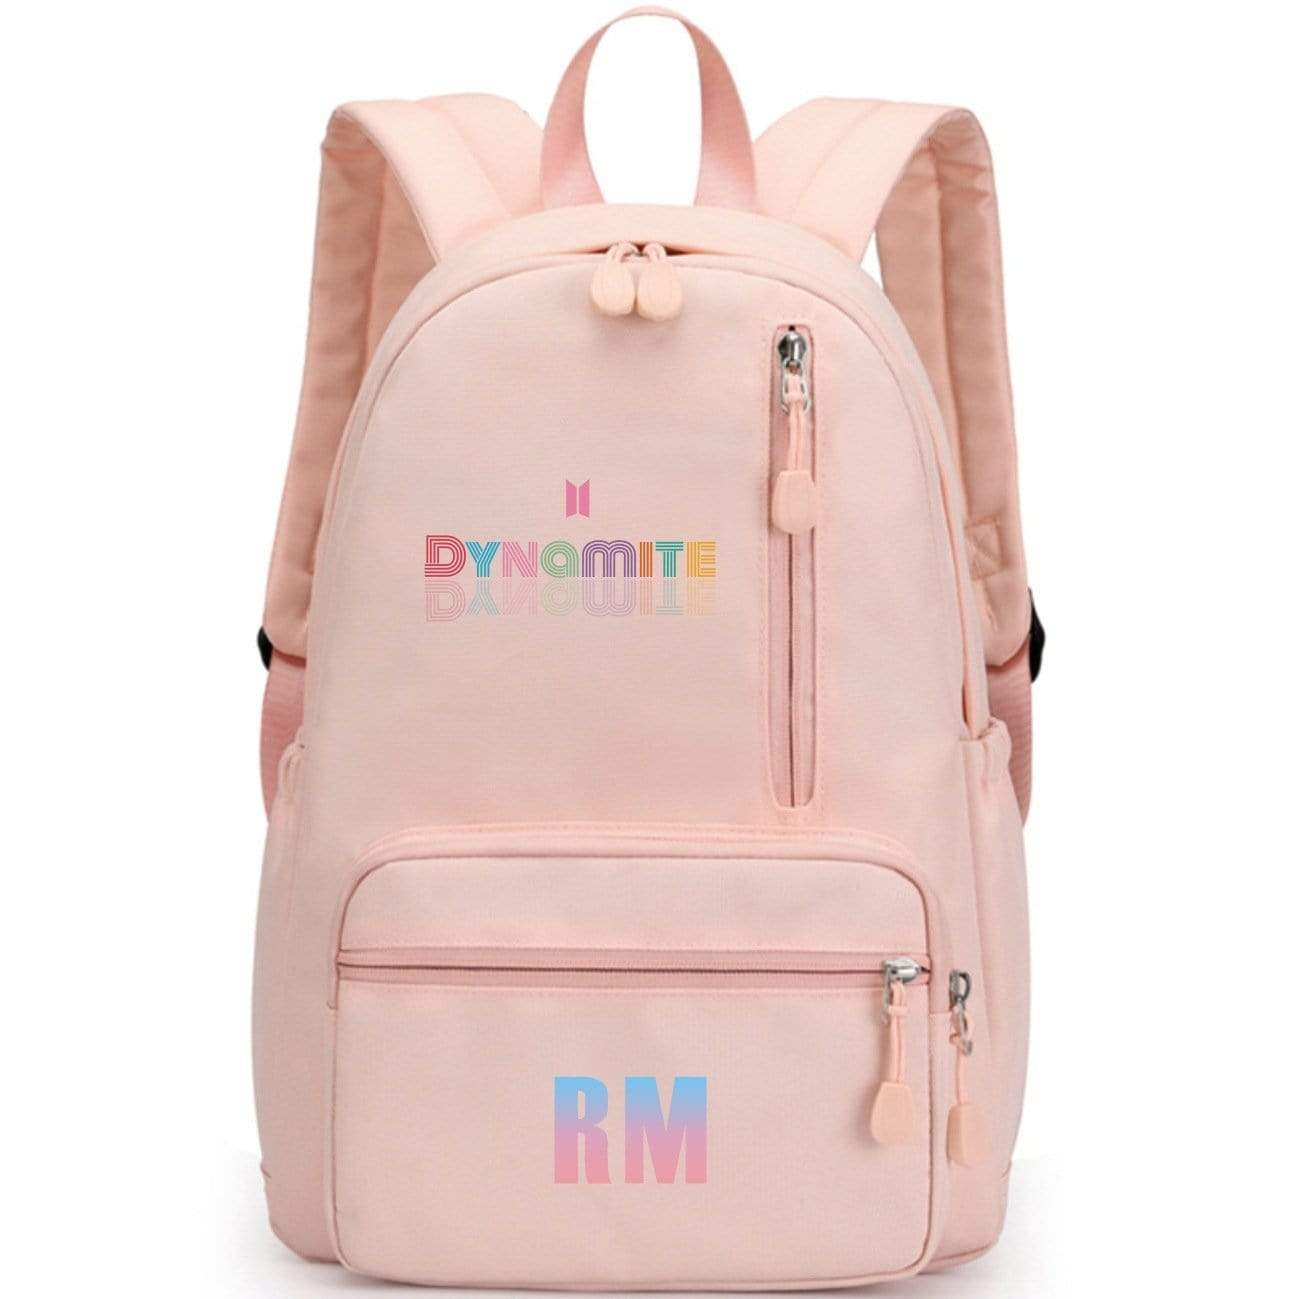 Bangtan Dynamite Pink Backpack